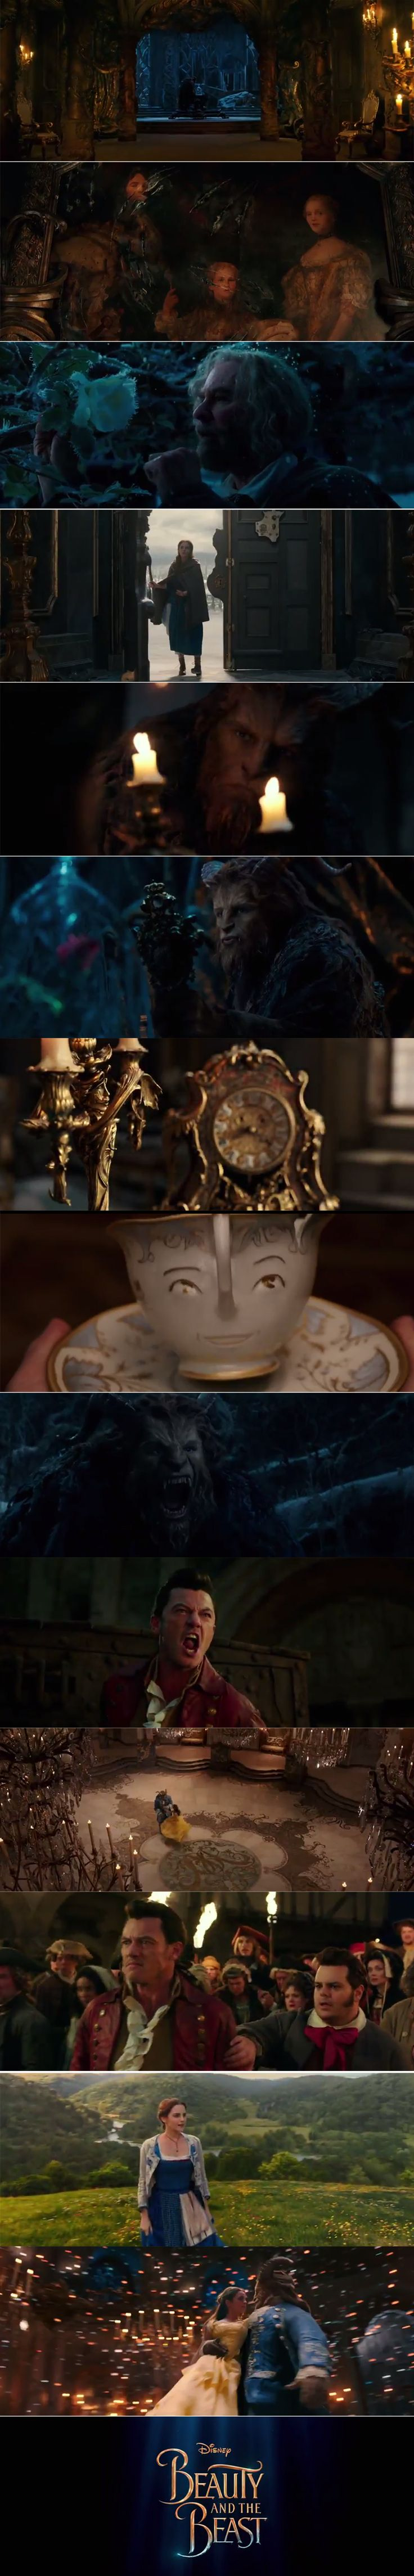 A scene-by-scene look at Disney's Beauty and the Beast trailer. #BeautyAndTheBeast waltzes into theatres March 17.